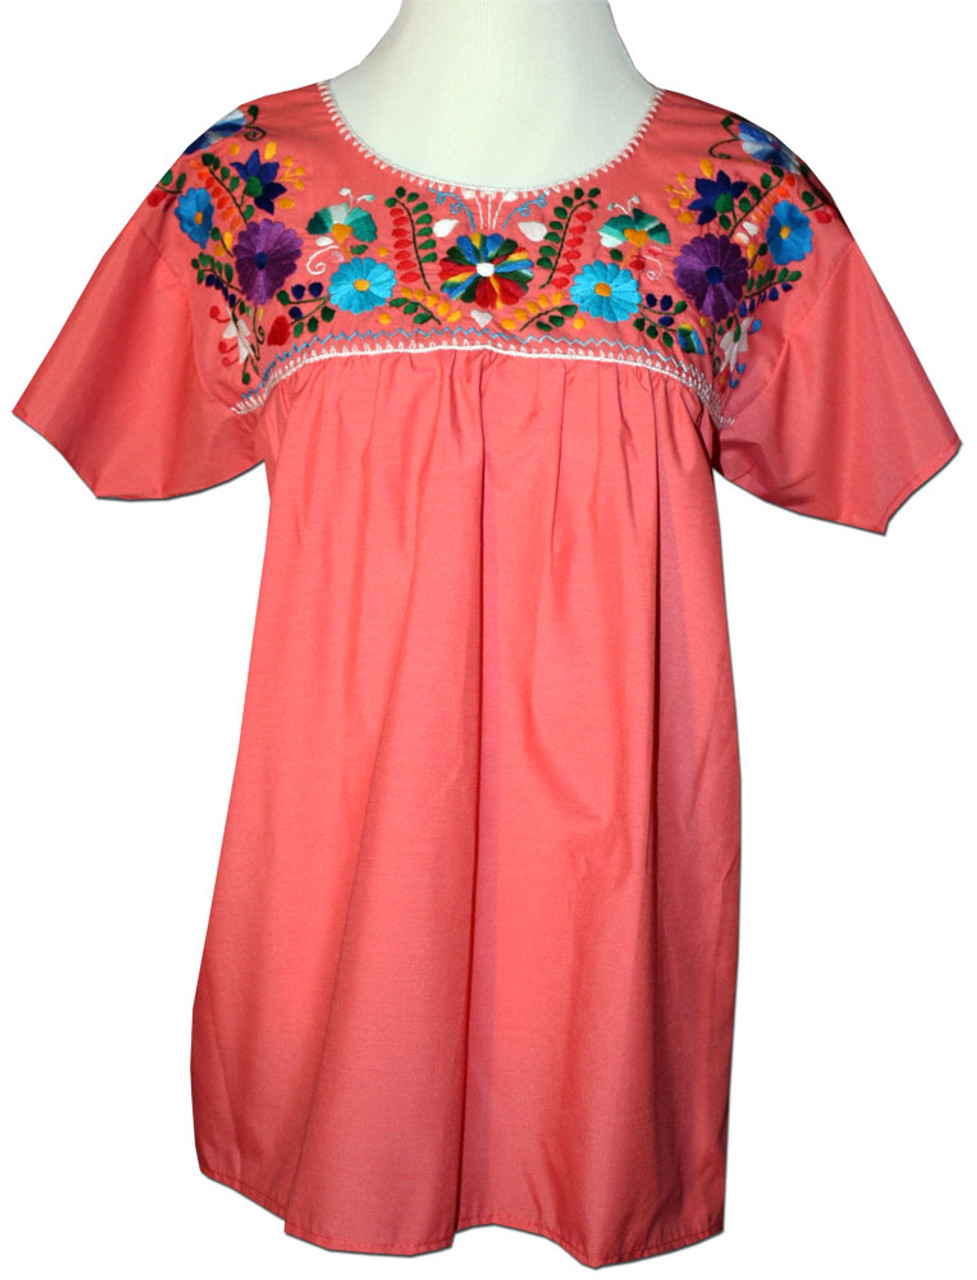 a57c36ece125f9 Mexican Embroidered Women s Blouse Orange M - My Mercado Mexican Imports